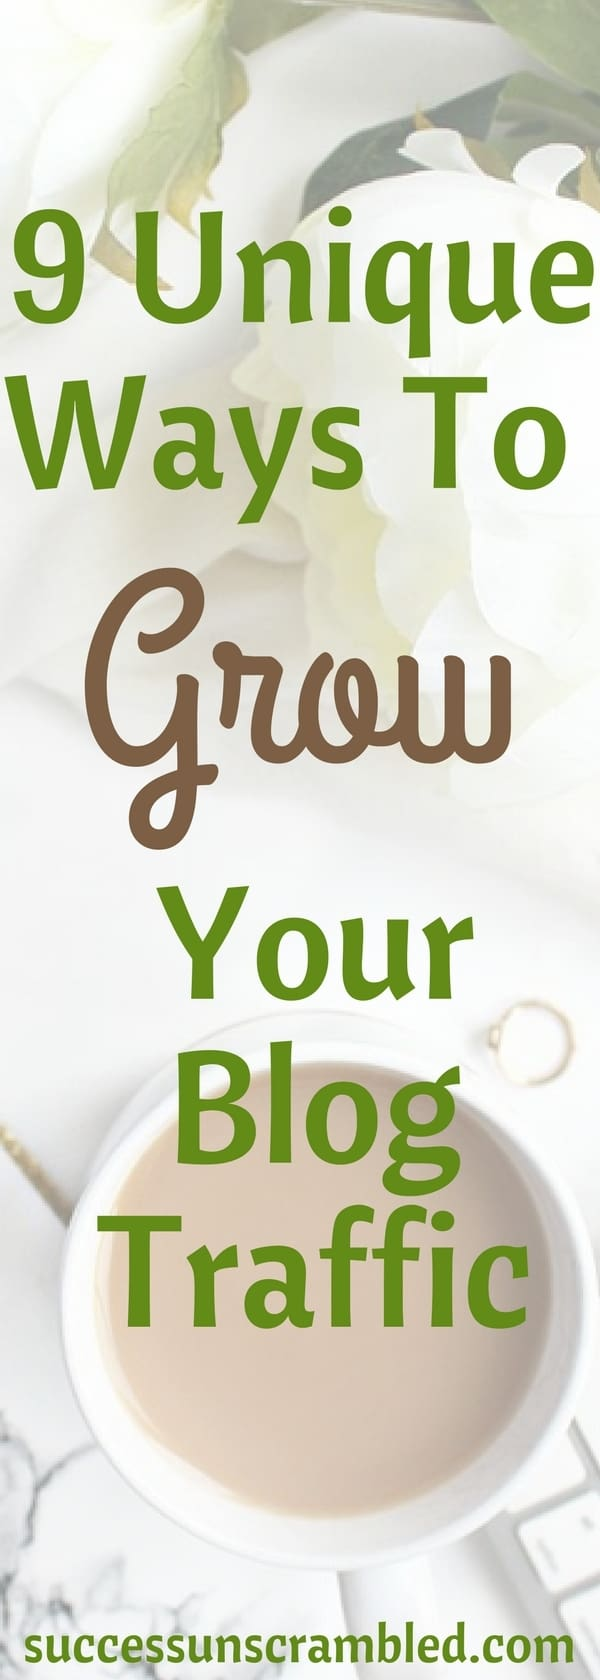 9 Unique Ways To Grow Your Blog Traffic 2